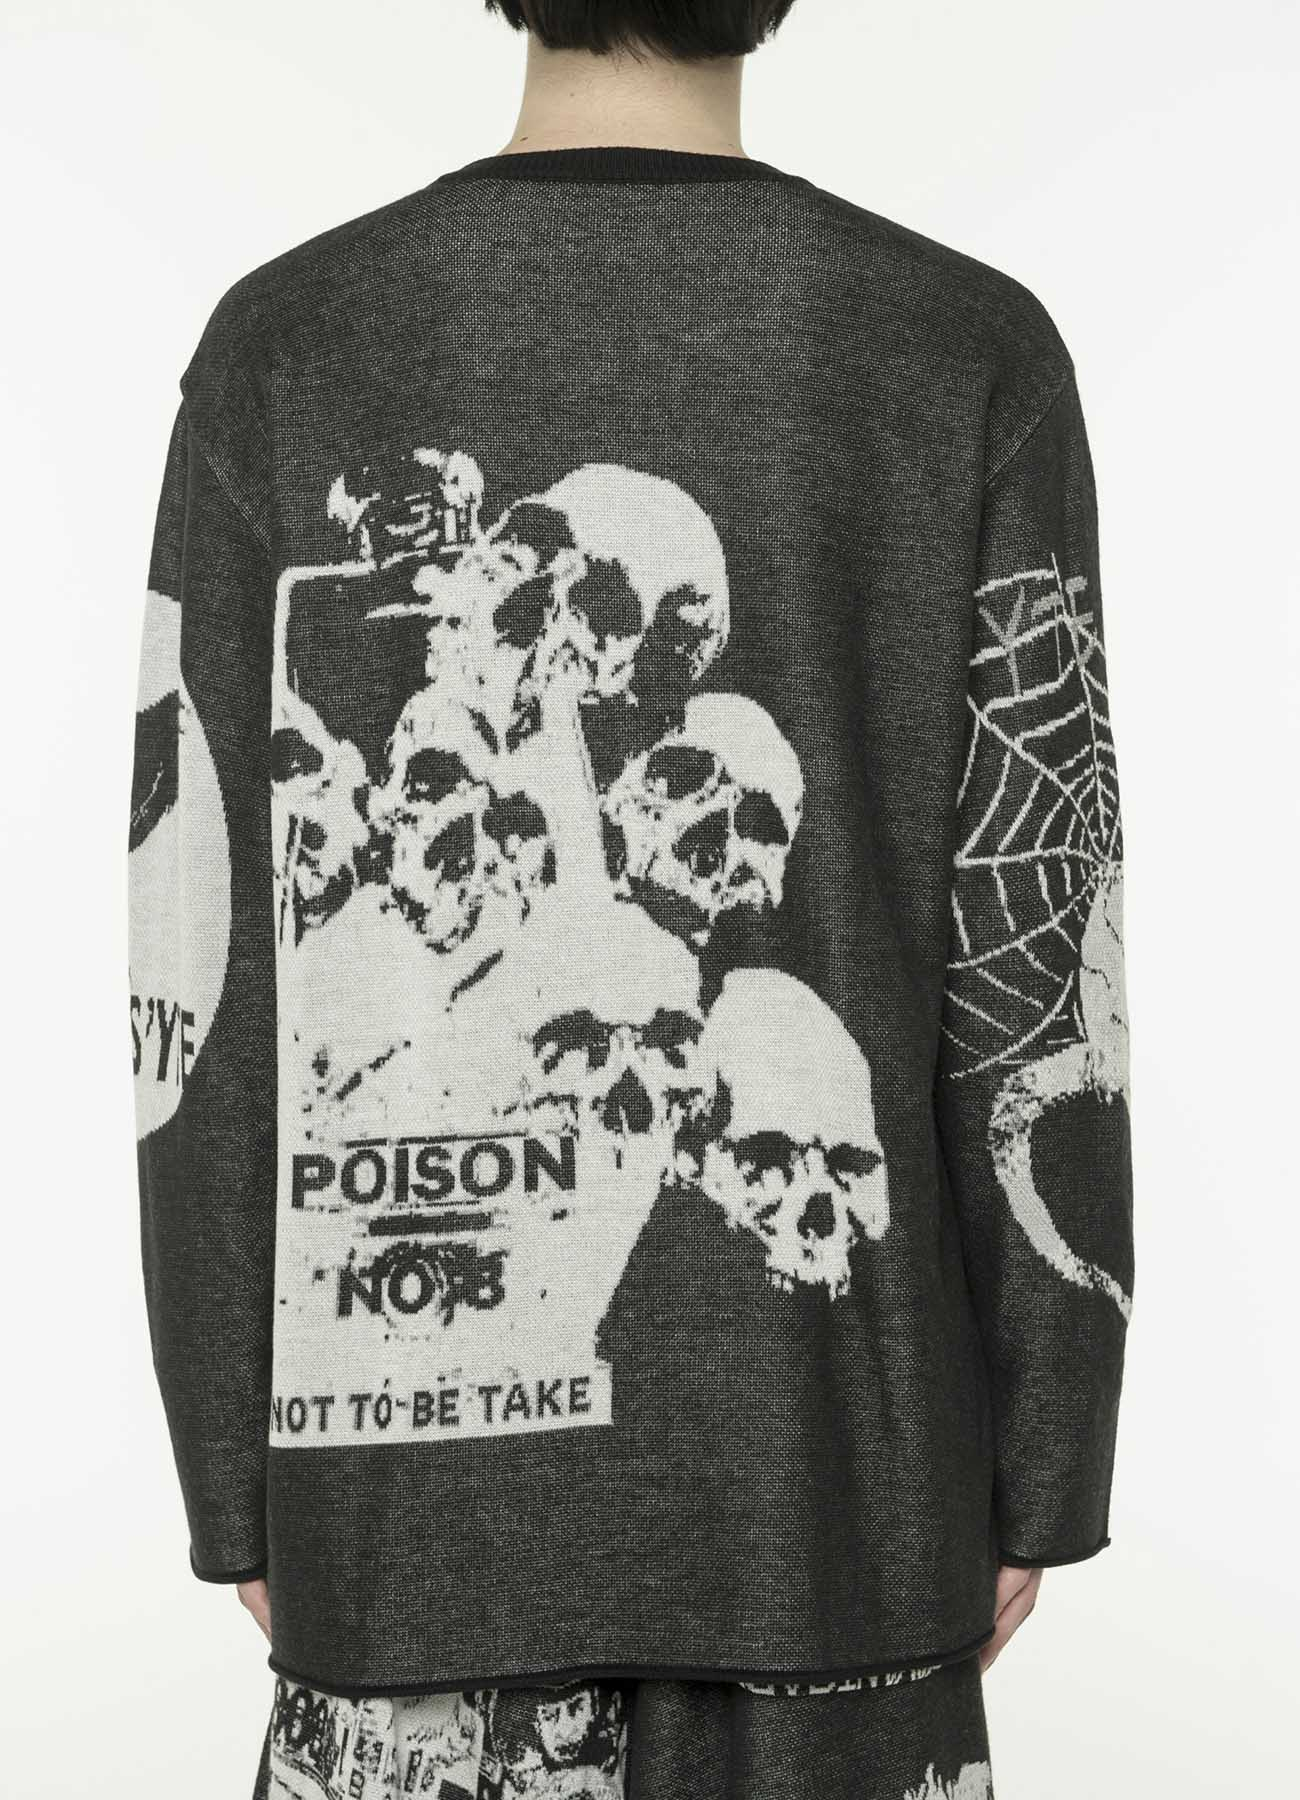 Hameauze Jacquard Knit Graphic Total Feature Crew Neck Black